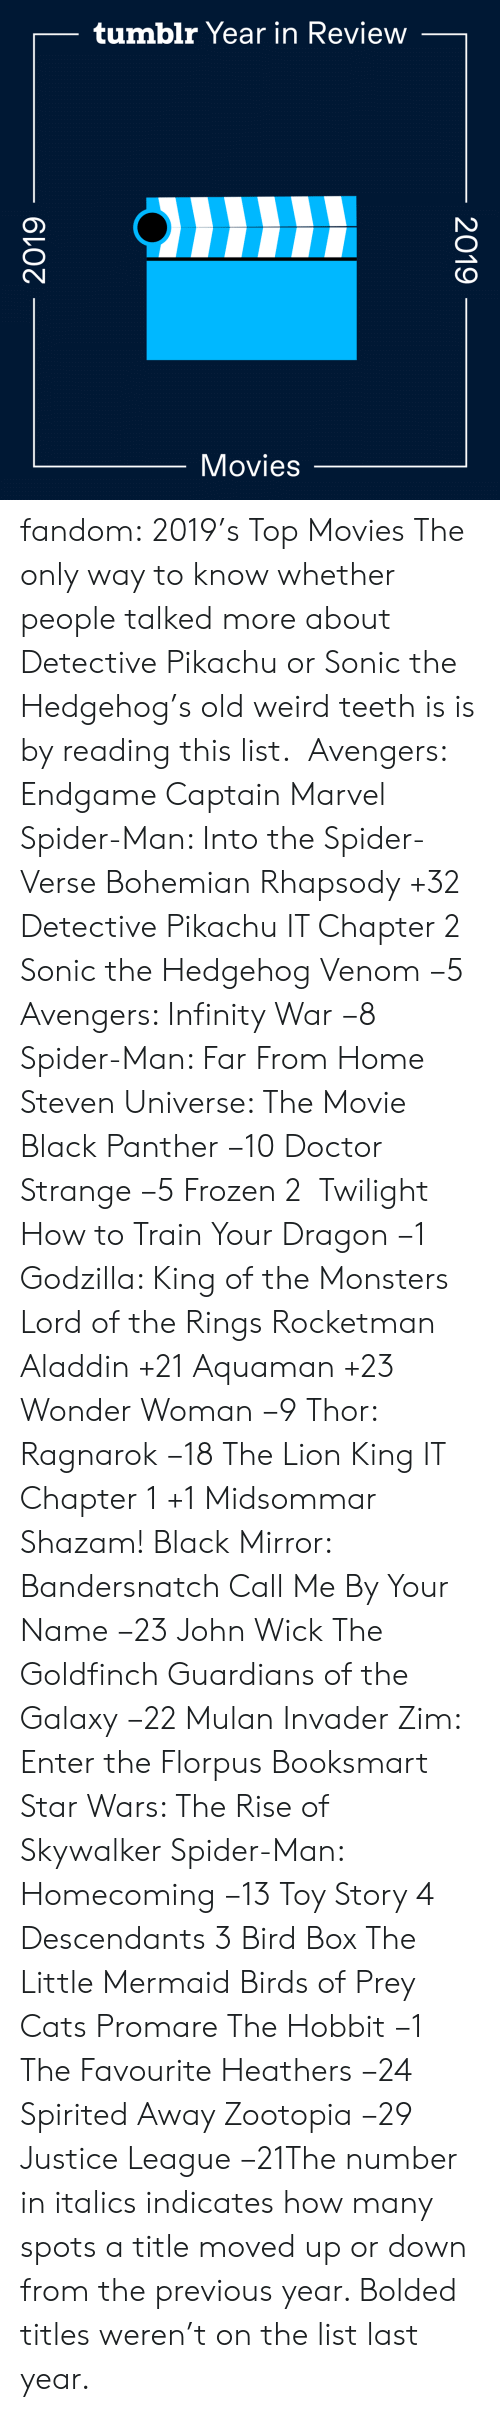 Justice League: tumblr Year in Review  Movies  2019  2019 fandom:  2019's Top Movies  The only way to know whether people talked more about Detective Pikachu or Sonic the Hedgehog's old weird teeth is is by reading this list.   Avengers: Endgame  Captain Marvel  Spider-Man: Into the Spider-Verse  Bohemian Rhapsody +32  Detective Pikachu  IT Chapter 2  Sonic the Hedgehog  Venom −5  Avengers: Infinity War −8  Spider-Man: Far From Home  Steven Universe: The Movie  Black Panther −10  Doctor Strange −5  Frozen 2   Twilight  How to Train Your Dragon −1  Godzilla: King of the Monsters  Lord of the Rings  Rocketman  Aladdin +21  Aquaman +23  Wonder Woman −9  Thor: Ragnarok −18  The Lion King  IT Chapter 1 +1  Midsommar  Shazam!  Black Mirror: Bandersnatch  Call Me By Your Name −23  John Wick  The Goldfinch  Guardians of the Galaxy −22  Mulan  Invader Zim: Enter the Florpus  Booksmart  Star Wars: The Rise of Skywalker  Spider-Man: Homecoming −13  Toy Story 4  Descendants 3  Bird Box  The Little Mermaid  Birds of Prey  Cats  Promare  The Hobbit −1  The Favourite  Heathers −24  Spirited Away  Zootopia −29 Justice League −21The number in italics indicates how many spots a title moved up or down from the previous year. Bolded titles weren't on the list last year.